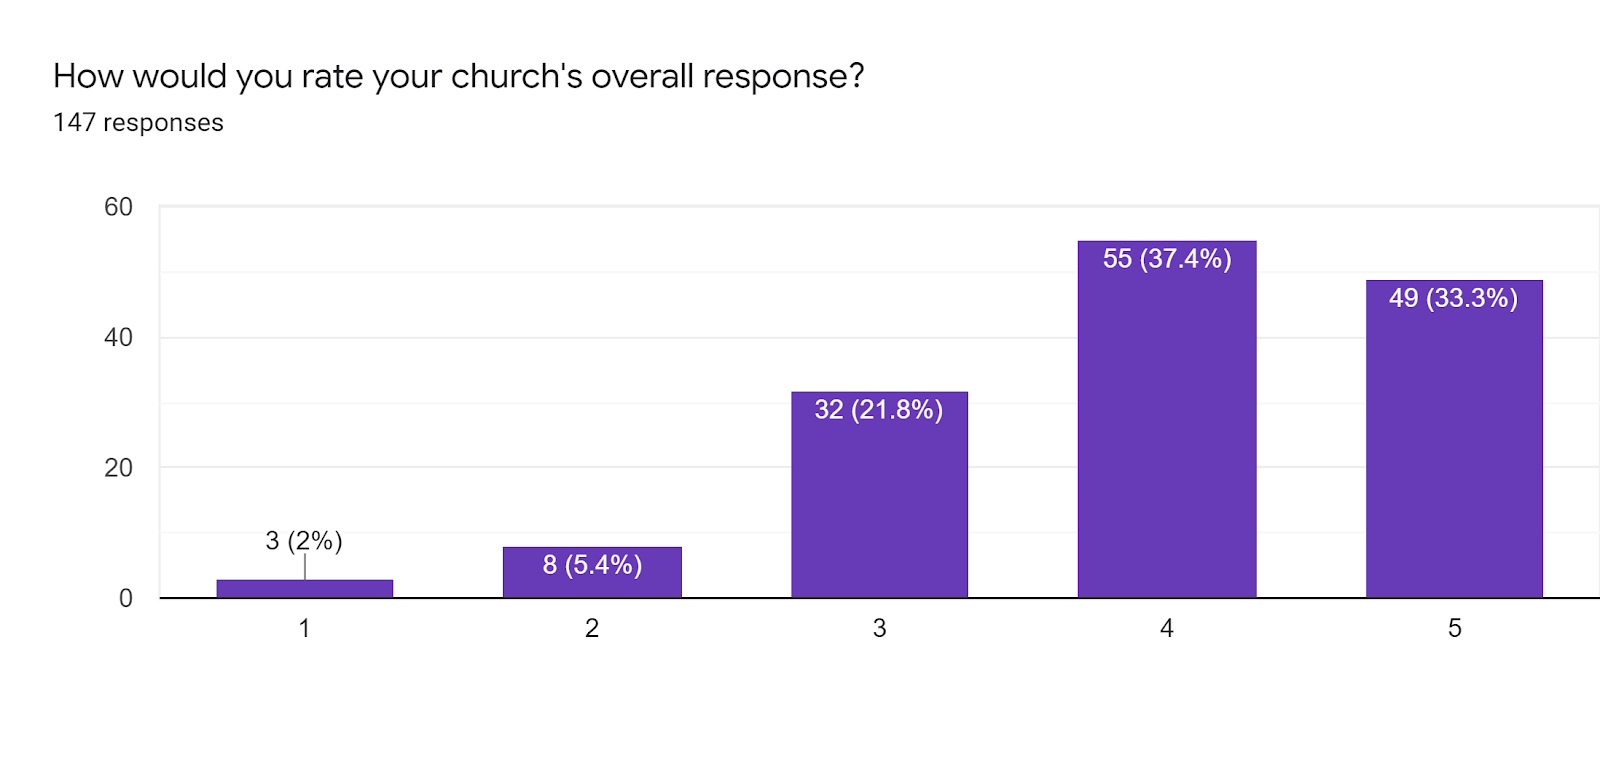 Question title: How would you rate your church's overall response? average 4.5